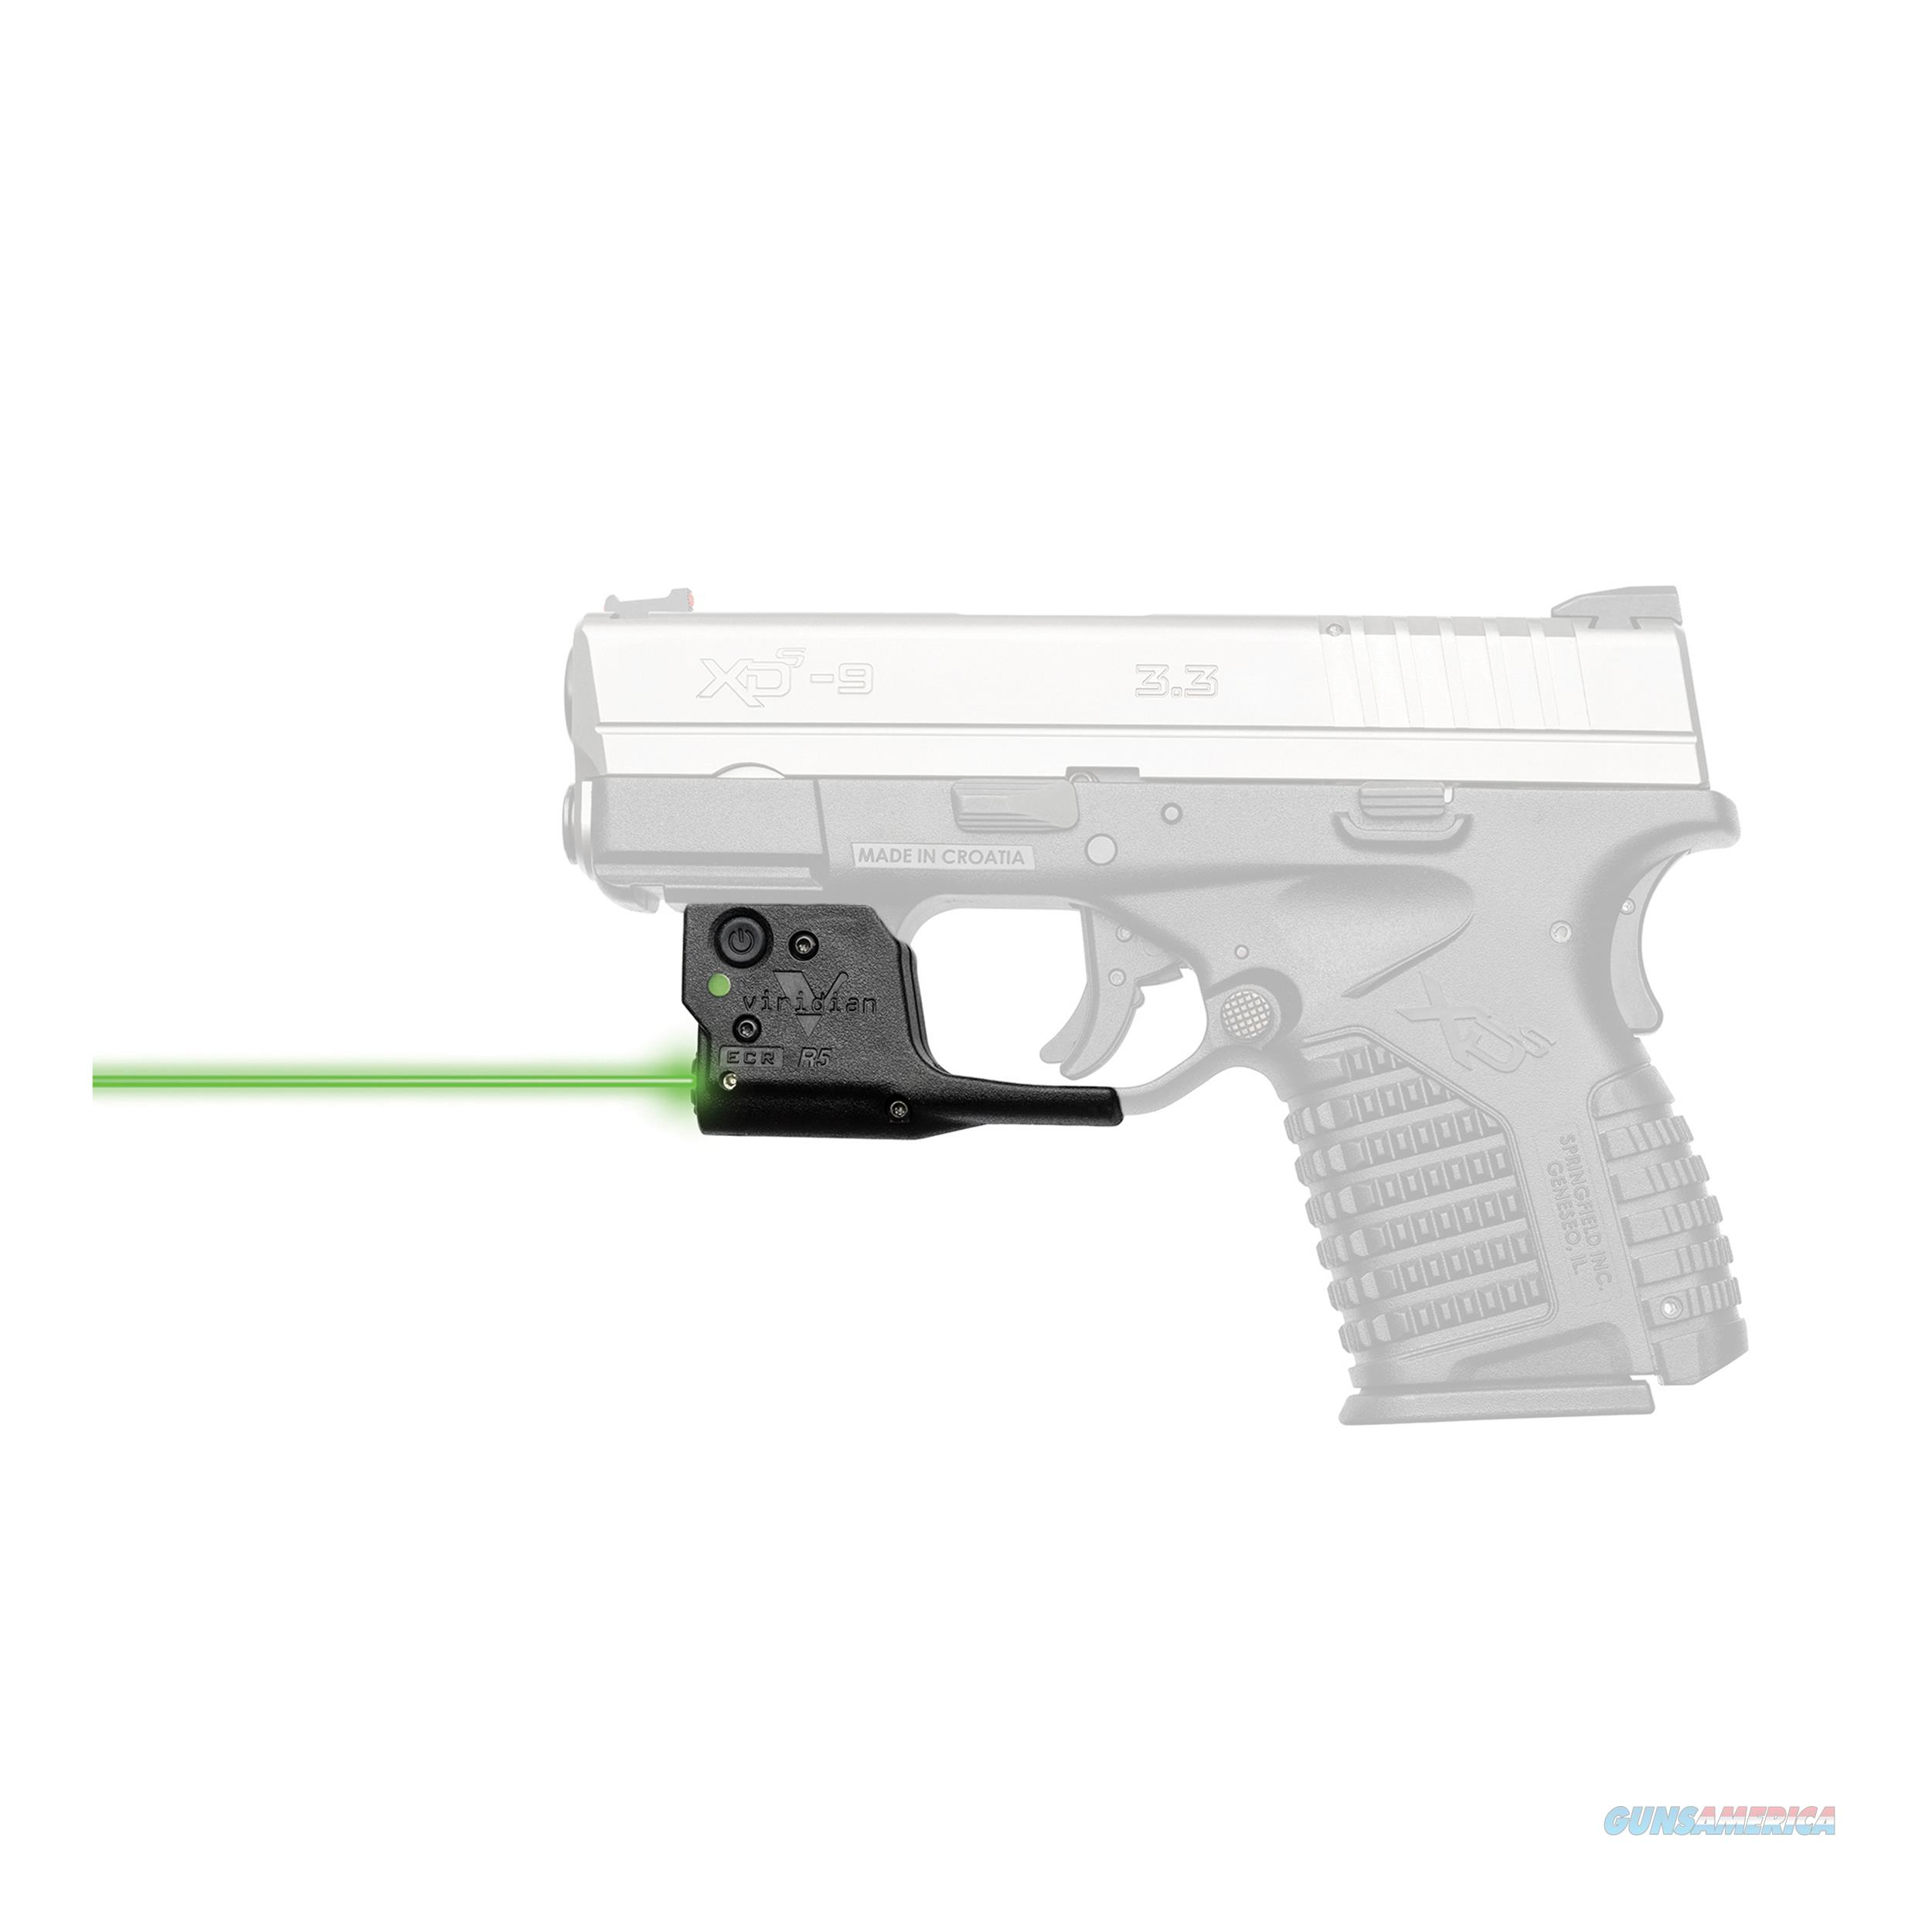 Viridian Green Laser Reactor 5 Gen Ii Green Laser 920-0018  Non-Guns > Iron/Metal/Peep Sights